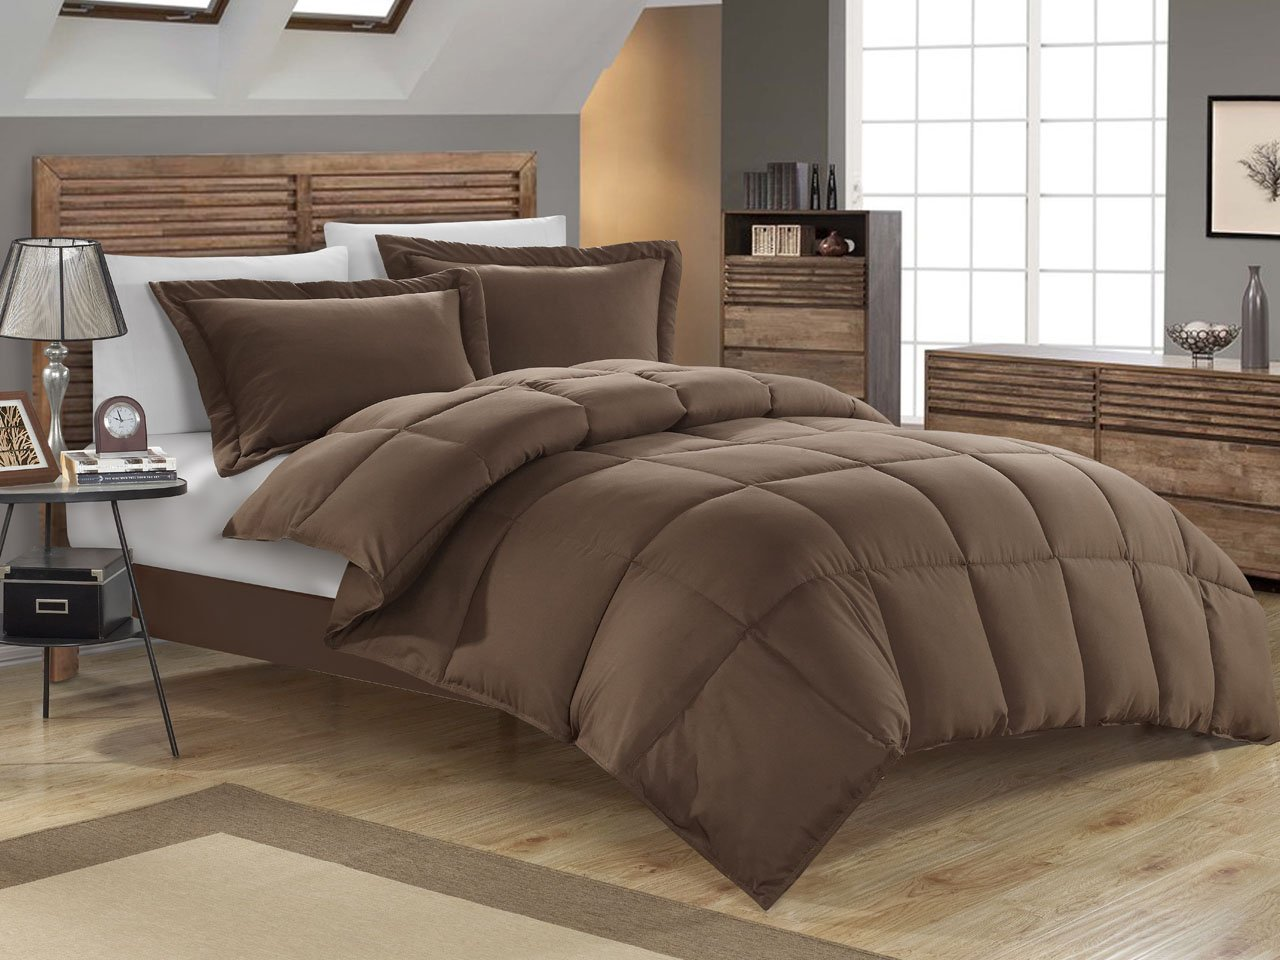 dimensions queen alternative comforter summer brands king set size weight down